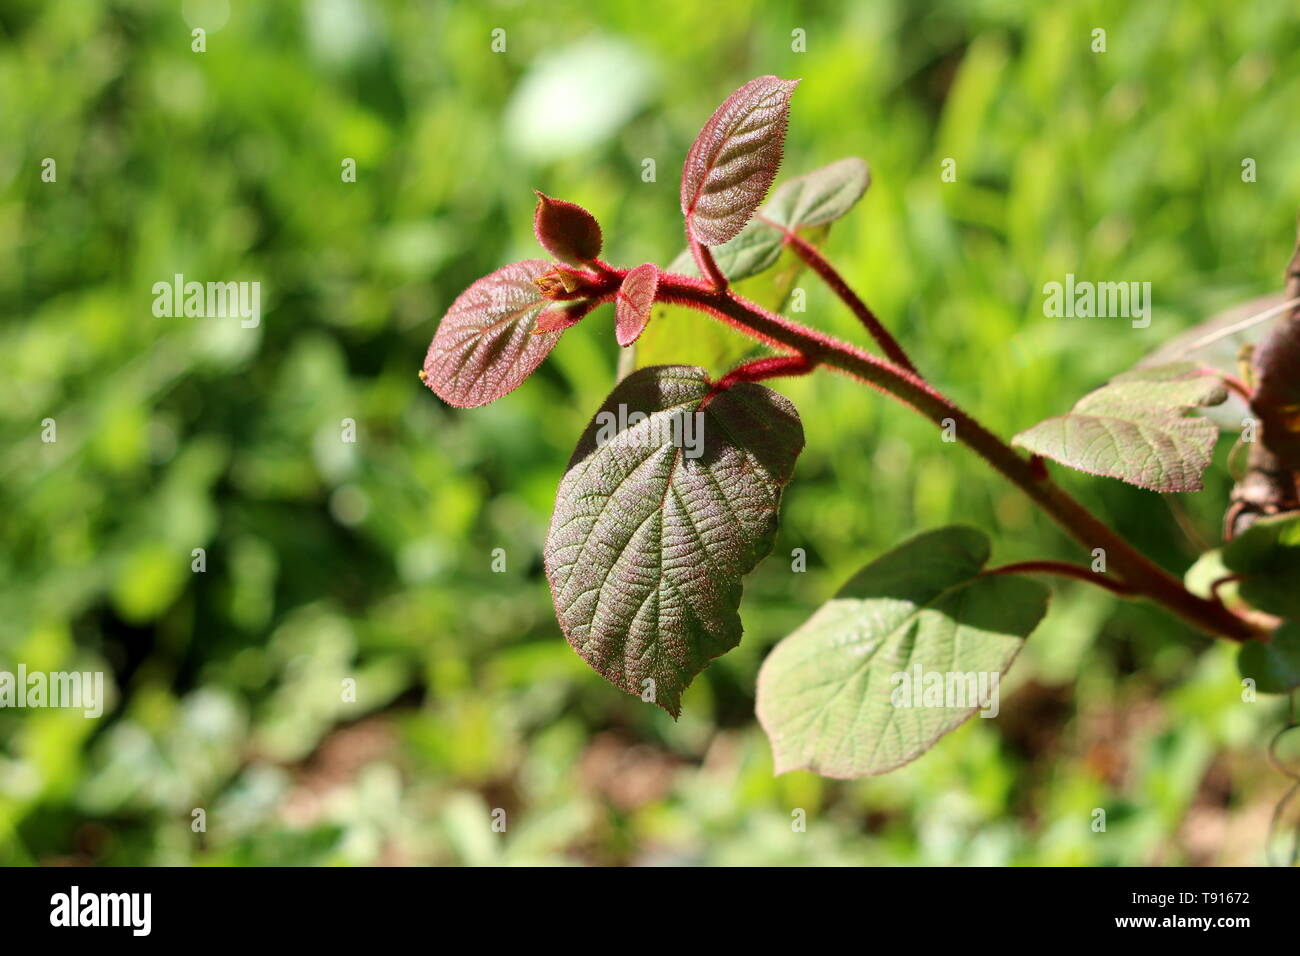 Dark green to red leathery leaves and hairy stem of Kiwi or Kiwifruit or Chinese gooseberry woody vine plant planted in local garden - Stock Image